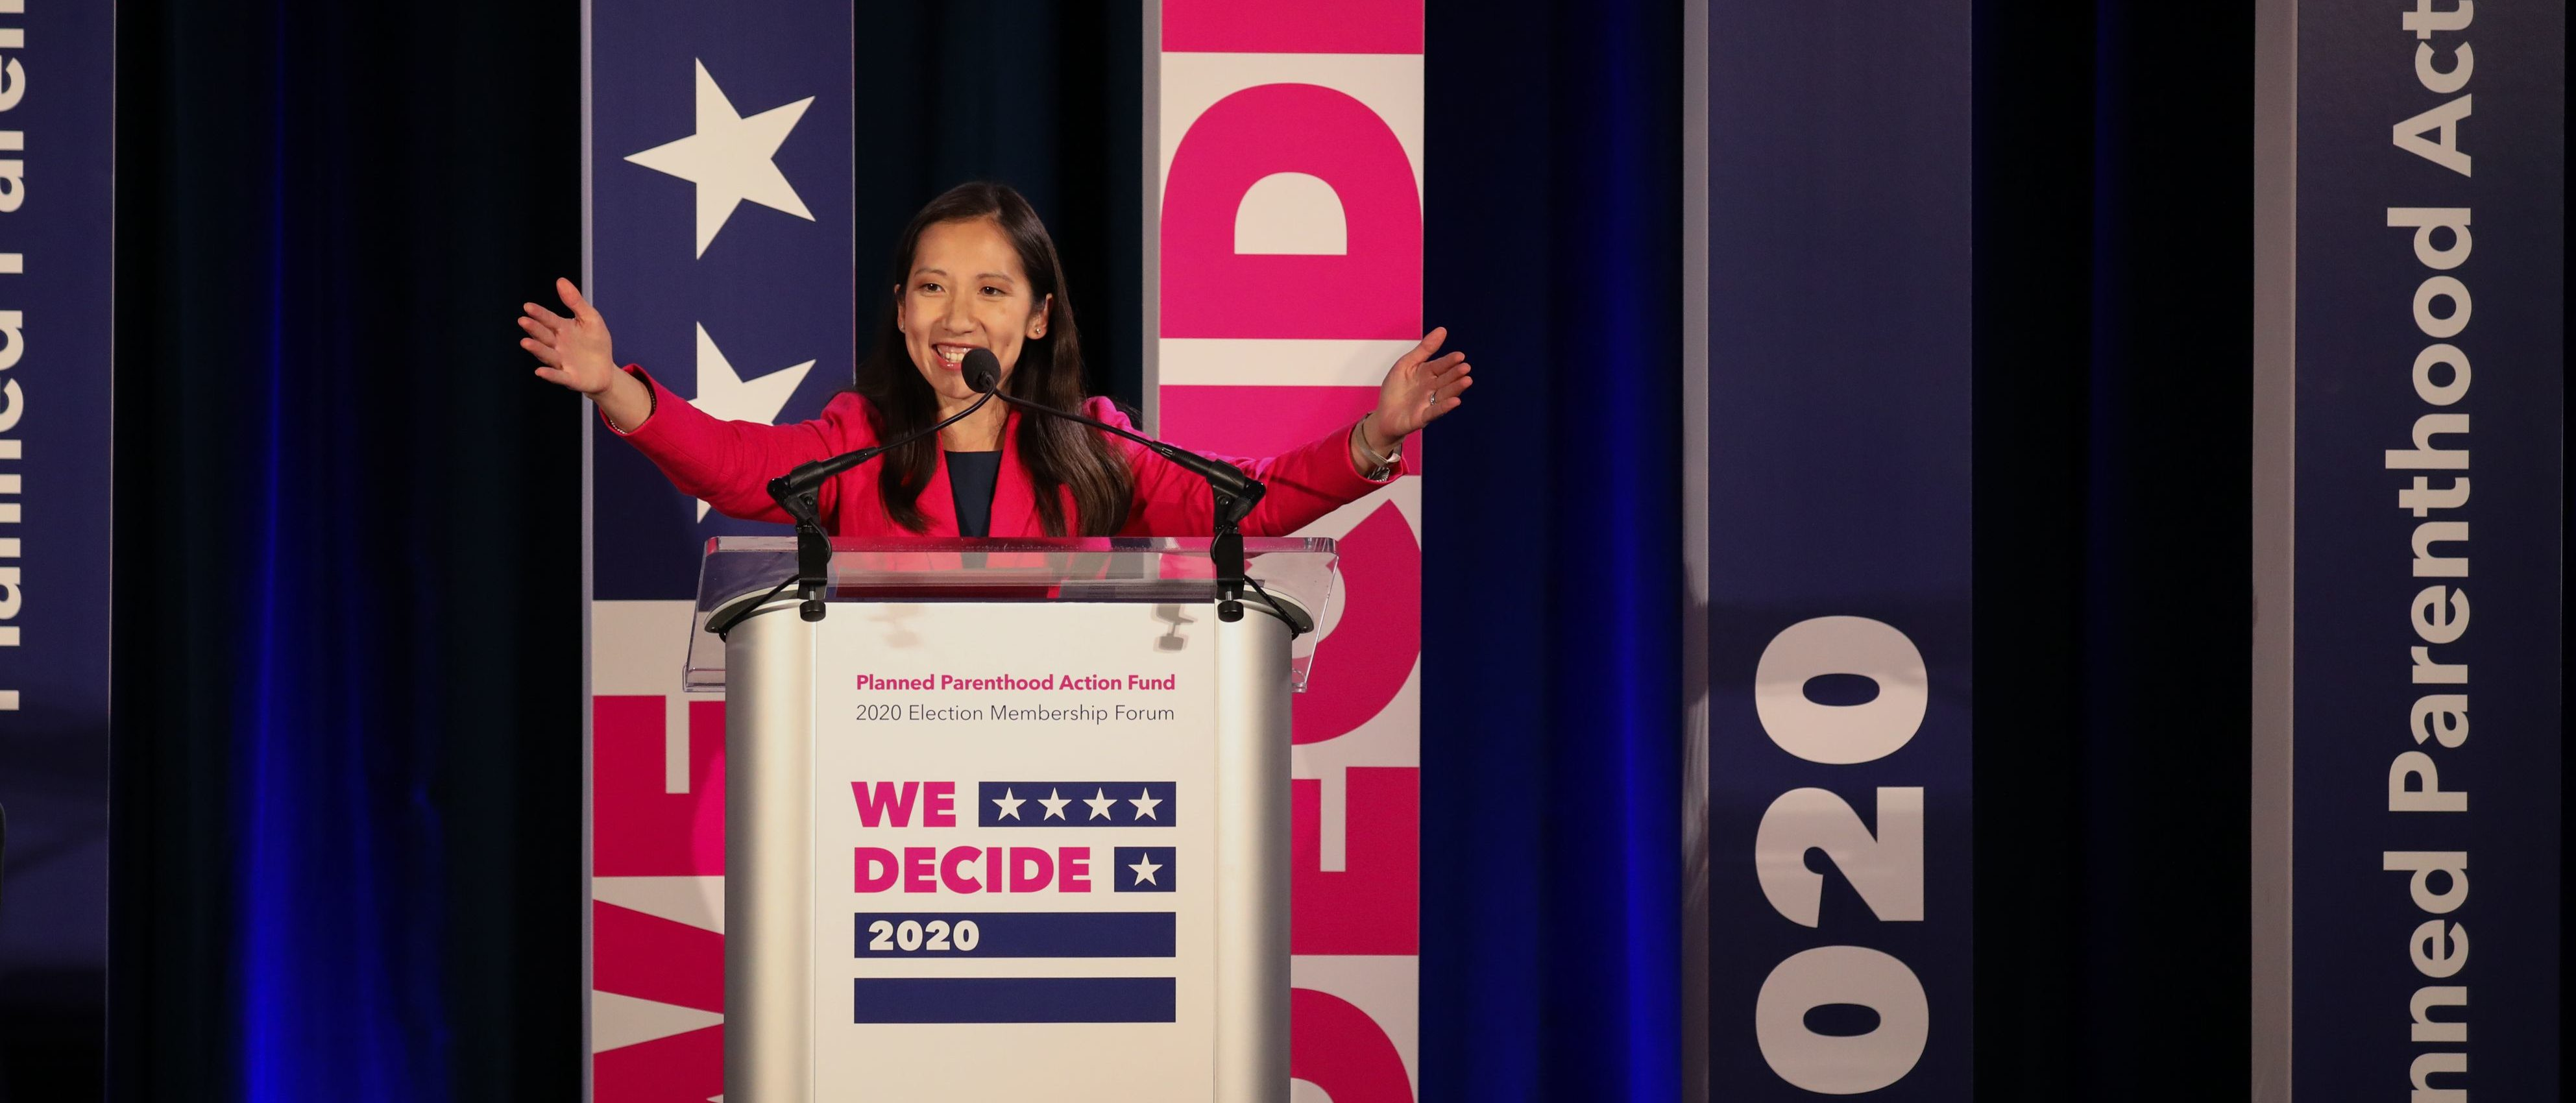 Leana Wen Says Planned Parenthood Is Driven By An 'Abortion-First Philosophy'